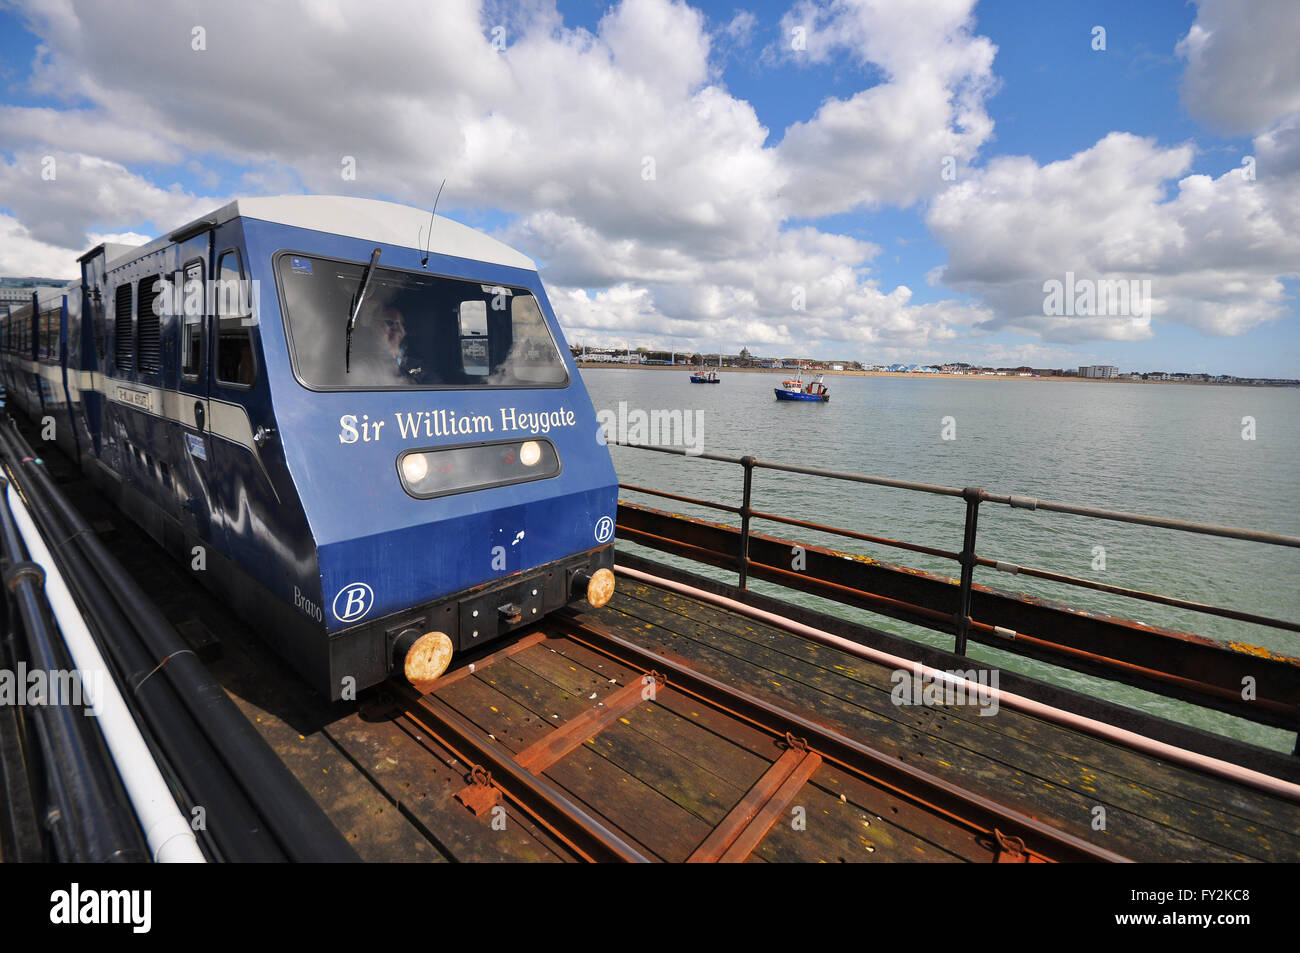 Southend Pier railway. Train named Sir William Heygate after 1st Baronet who campaigned to create the pier. Space - Stock Image